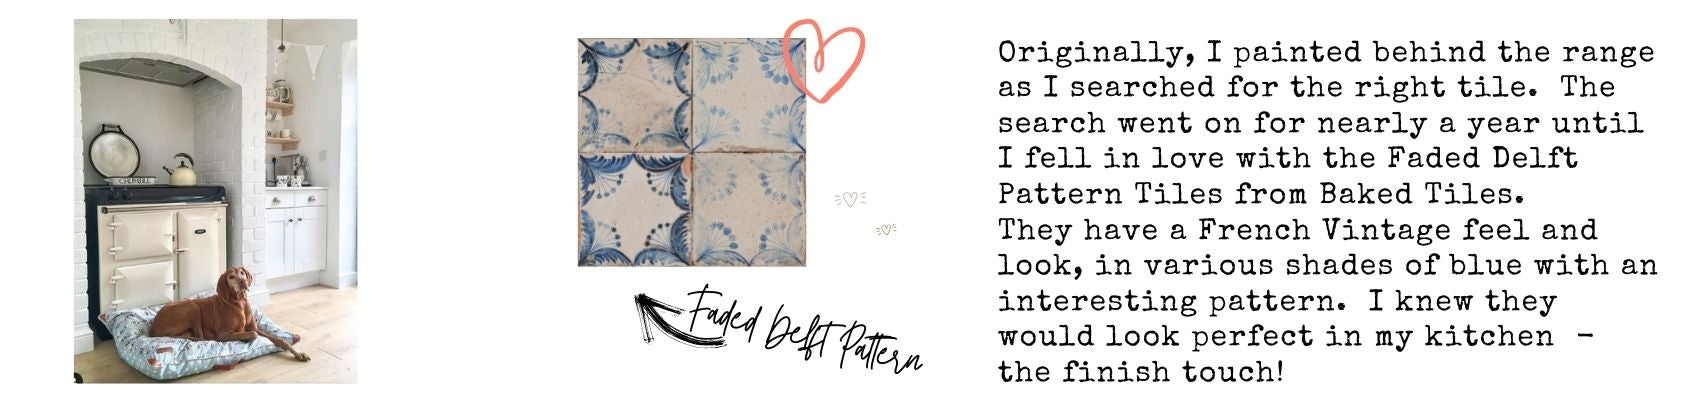 Faded Delft Pattern tile - The Baked Tile Co.